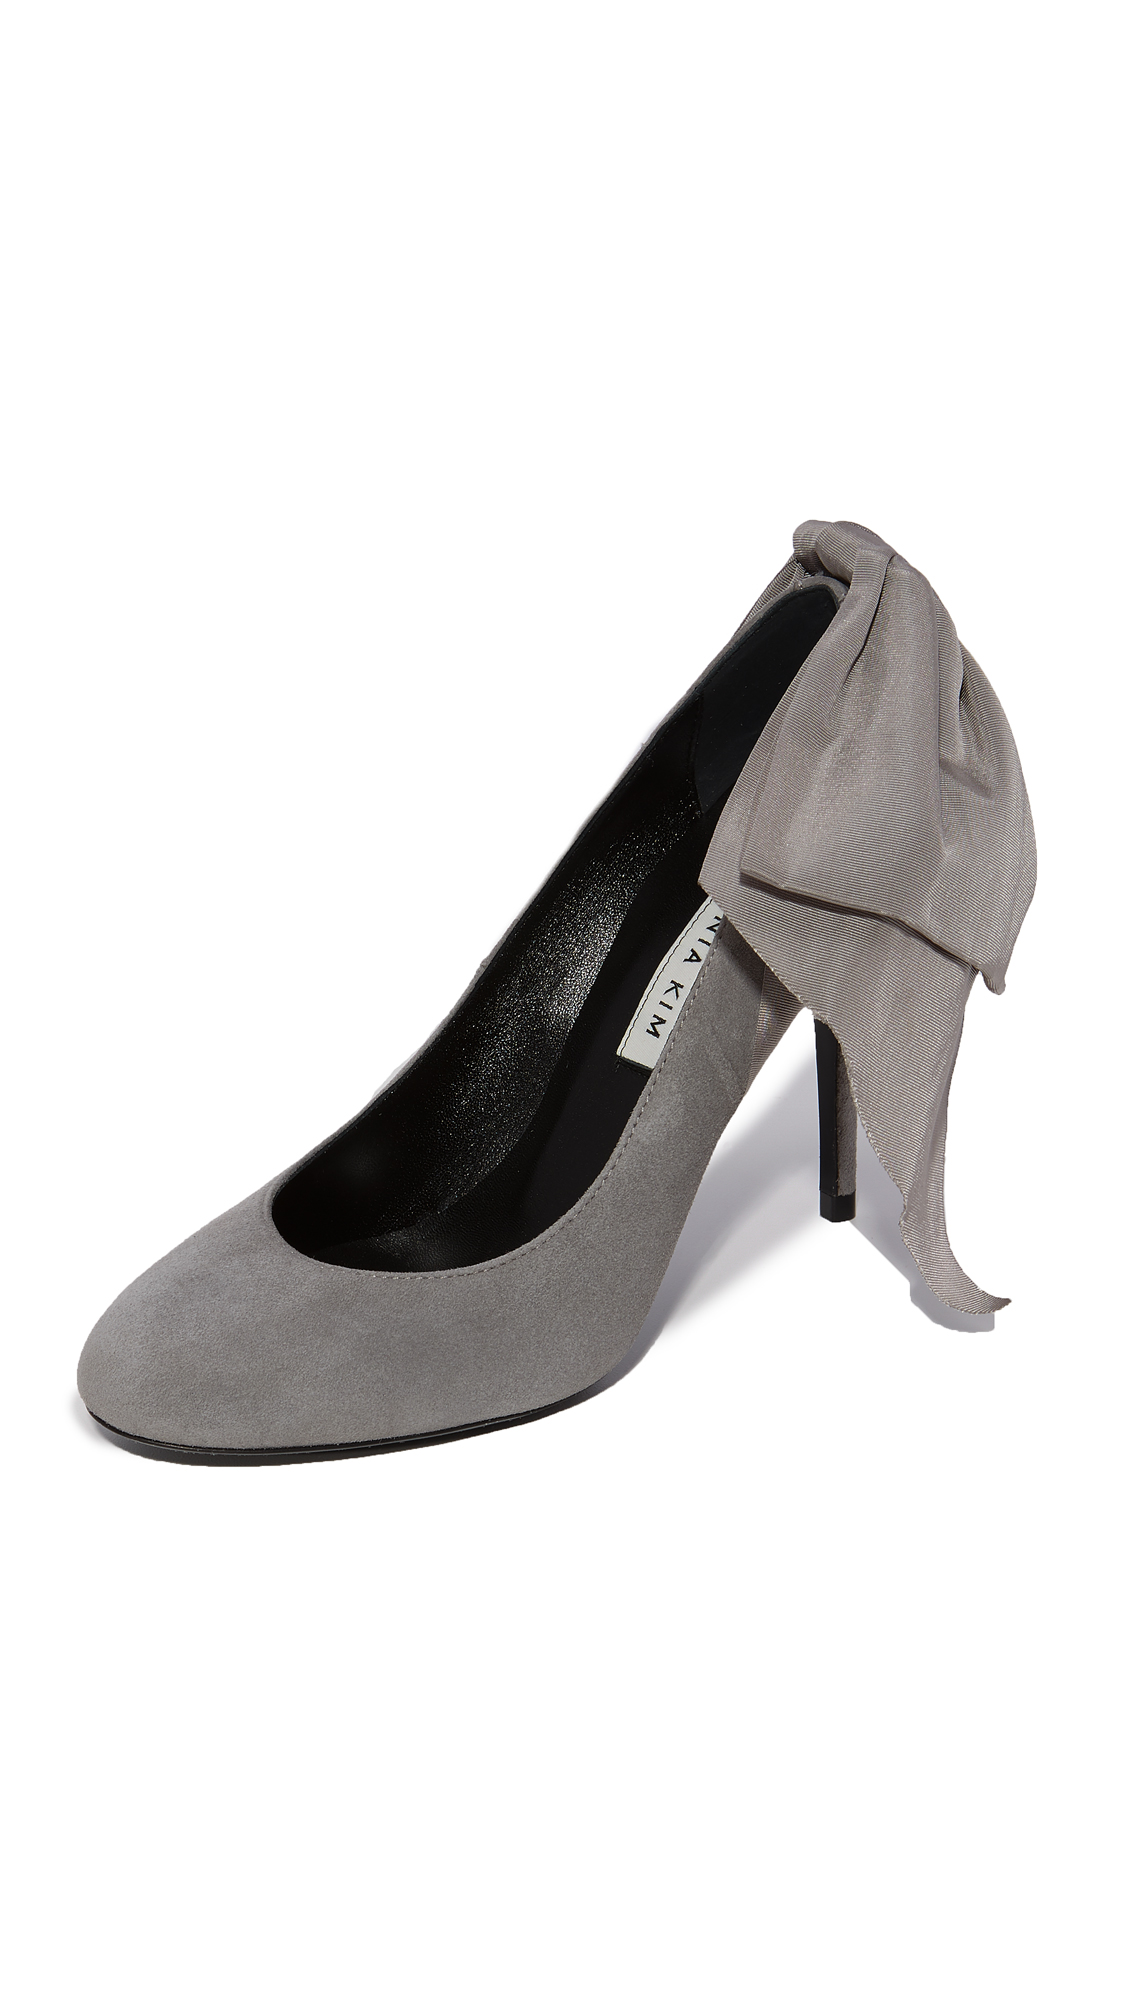 Eugenia Kim Elsa Bow Pumps - Light Gray